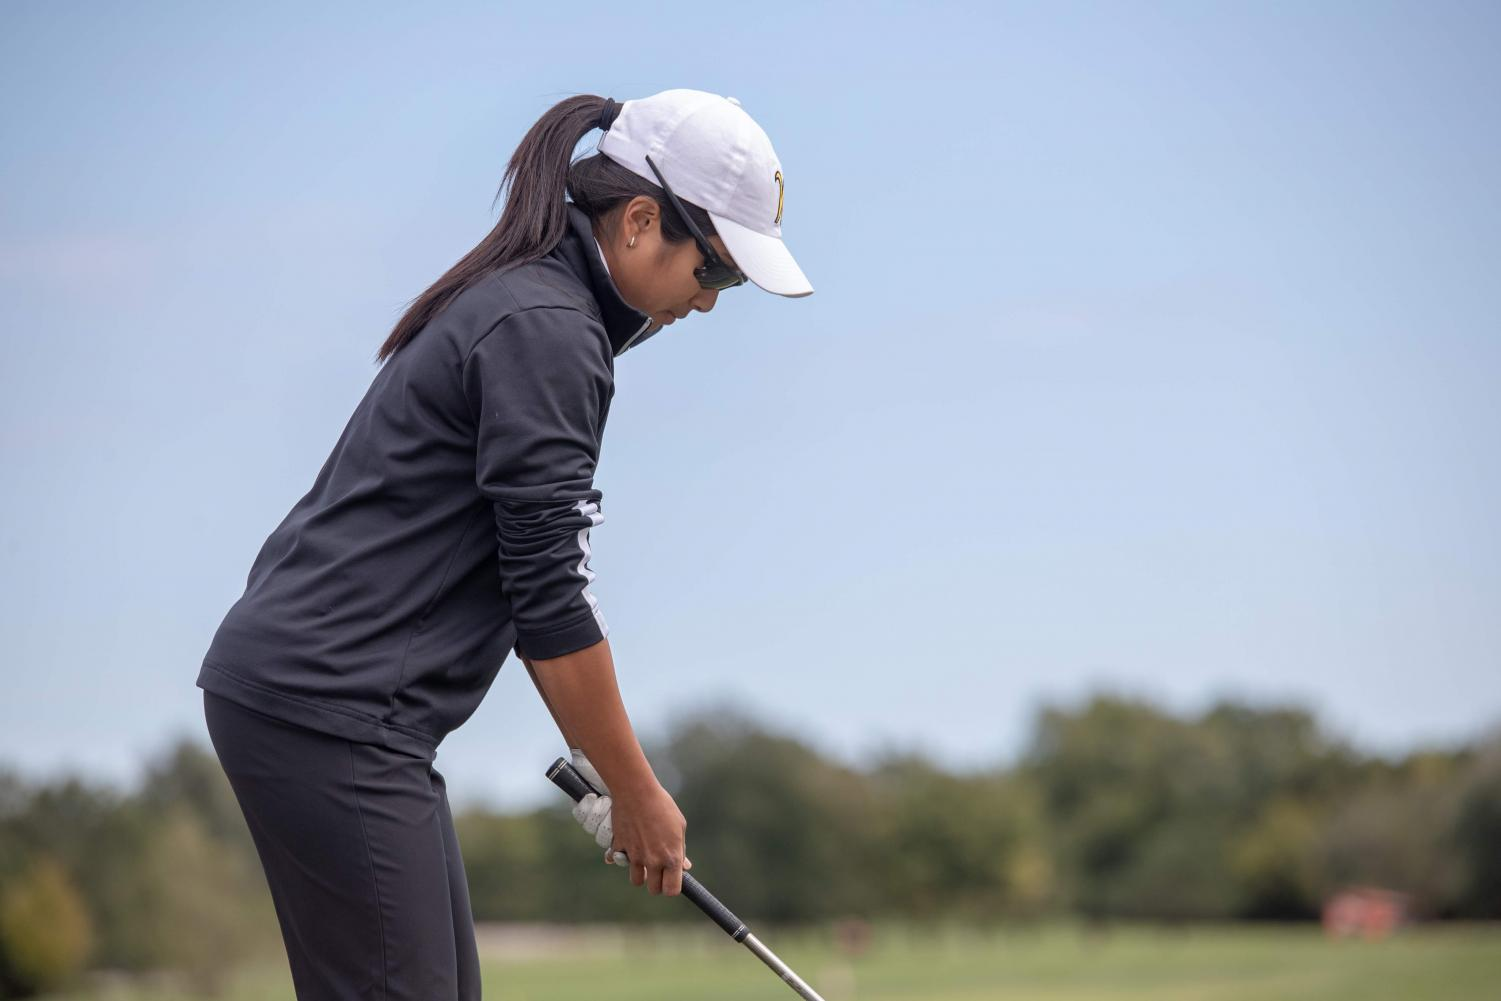 Wichita State's Gavrilla Arya lines up for a shot on the course during practice on Oct. 11, 2018.